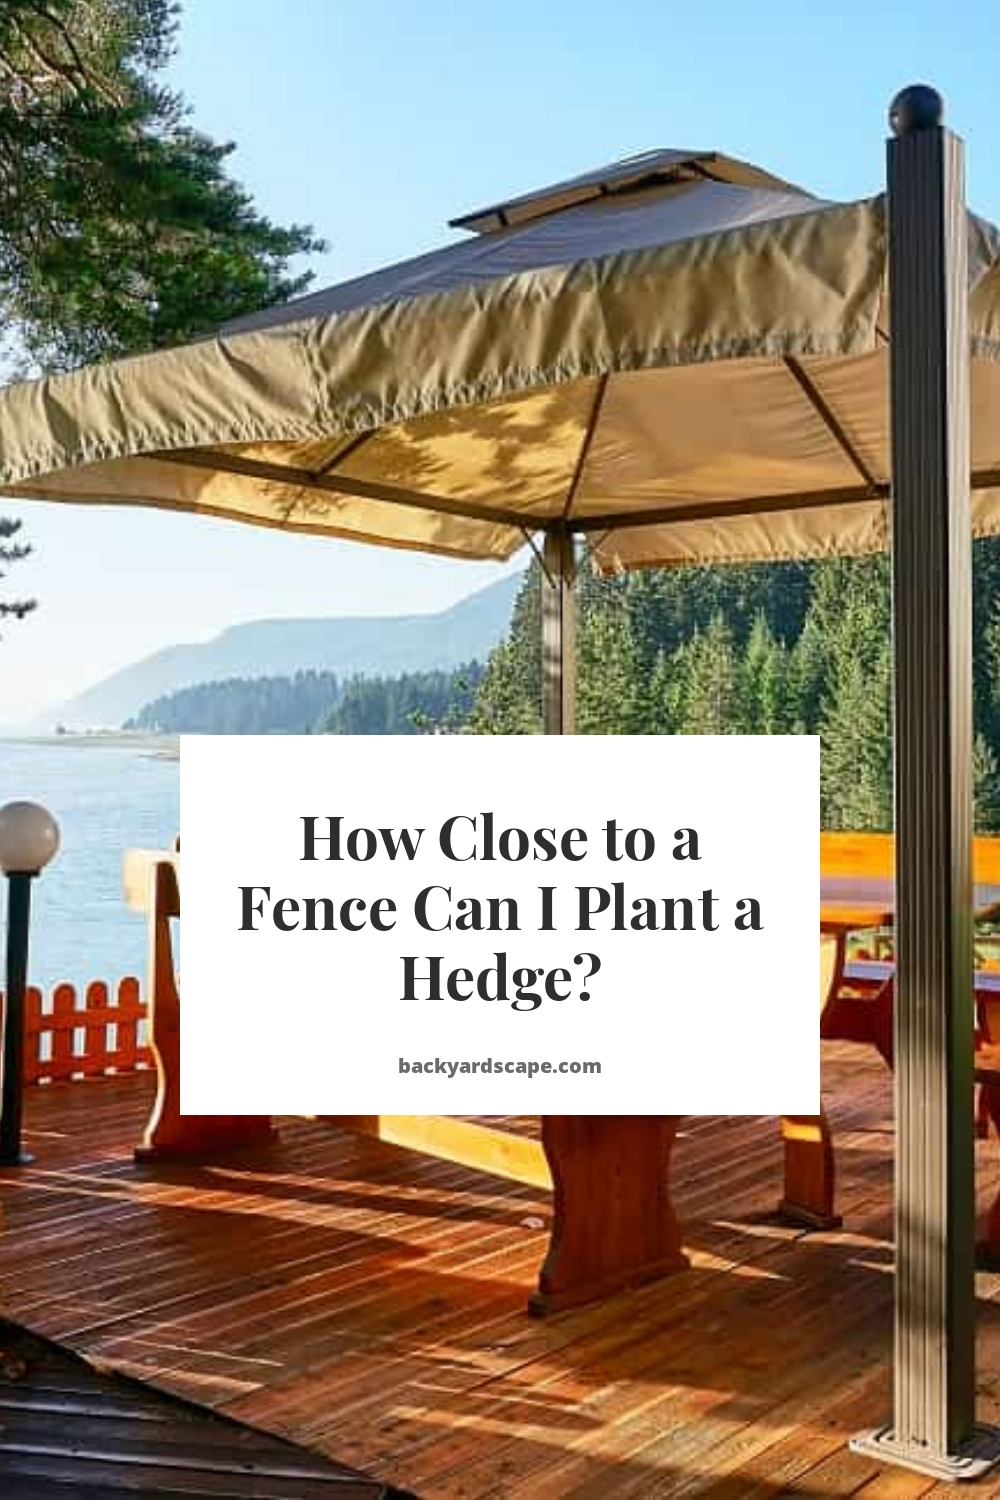 How Close to a Fence Can I Plant a Hedge?